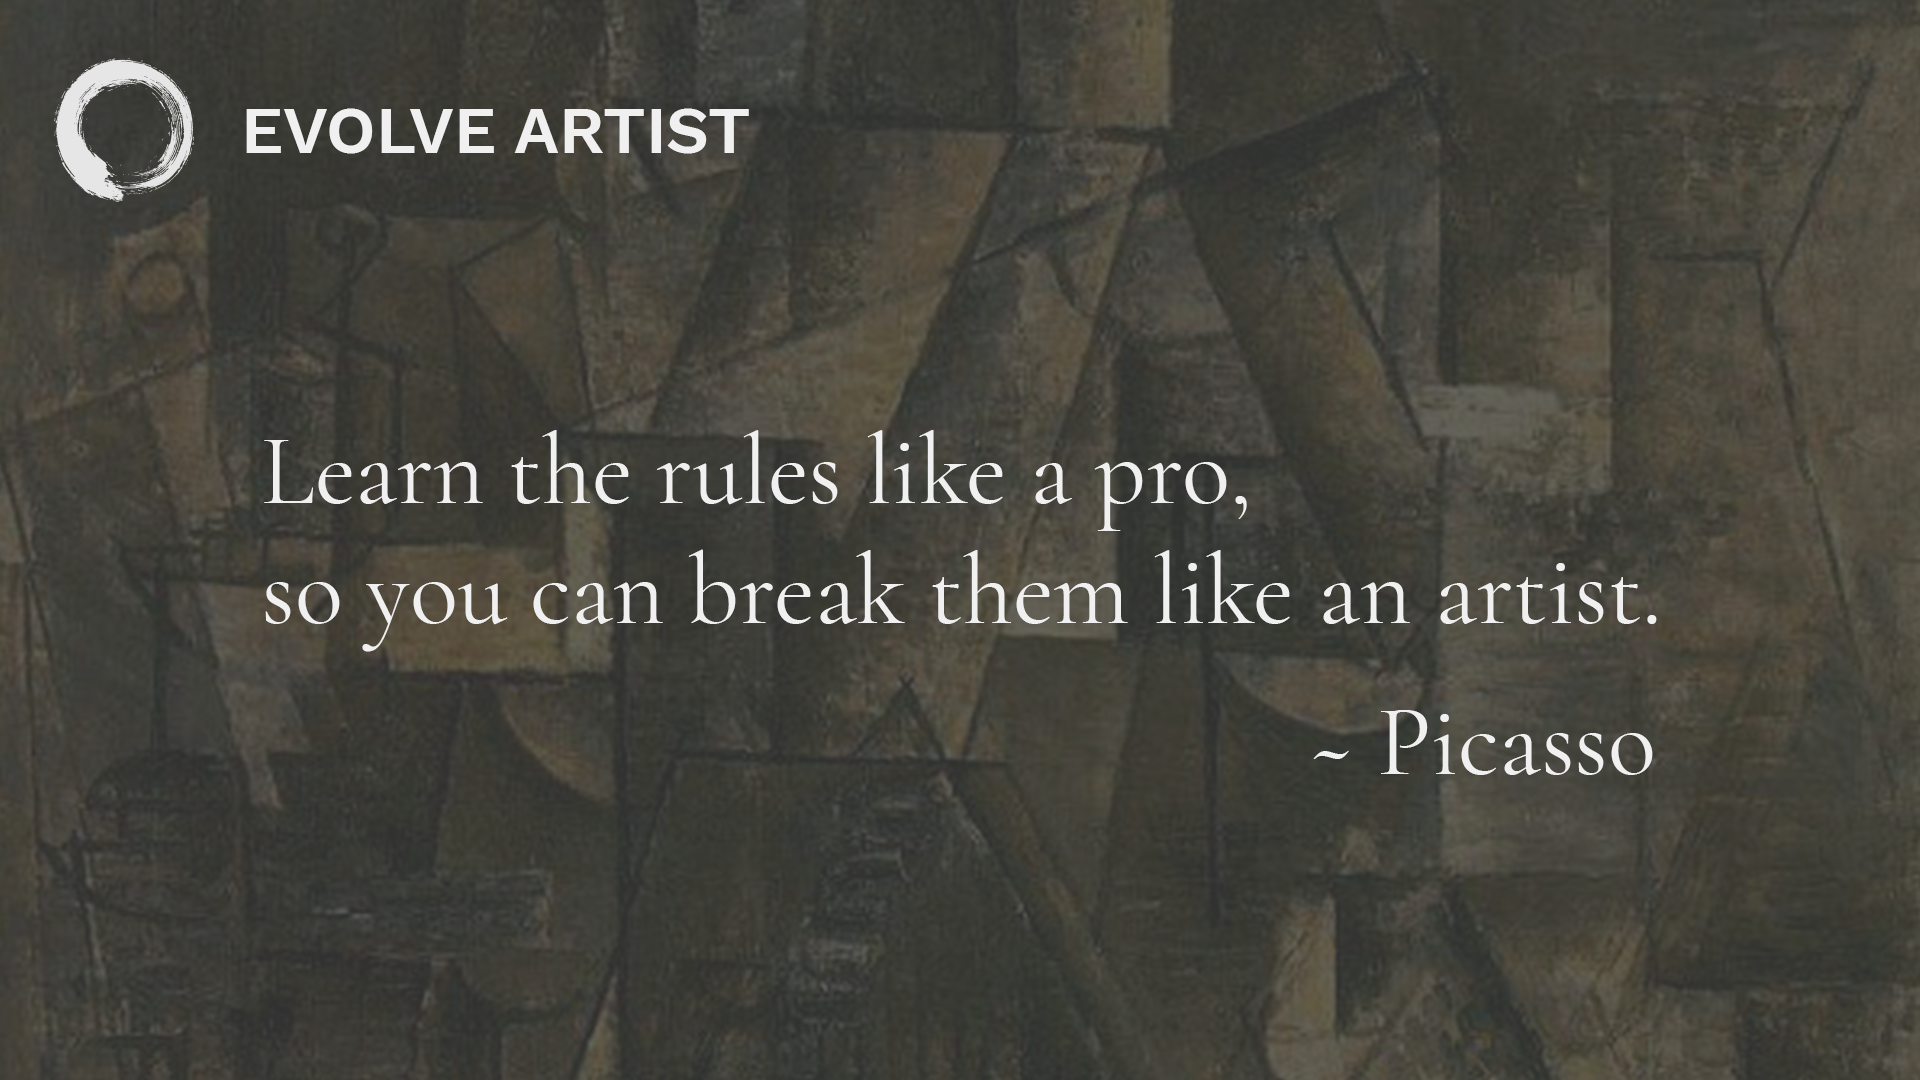 Learn the rules like a pro so you can break them like an artist - Picasso